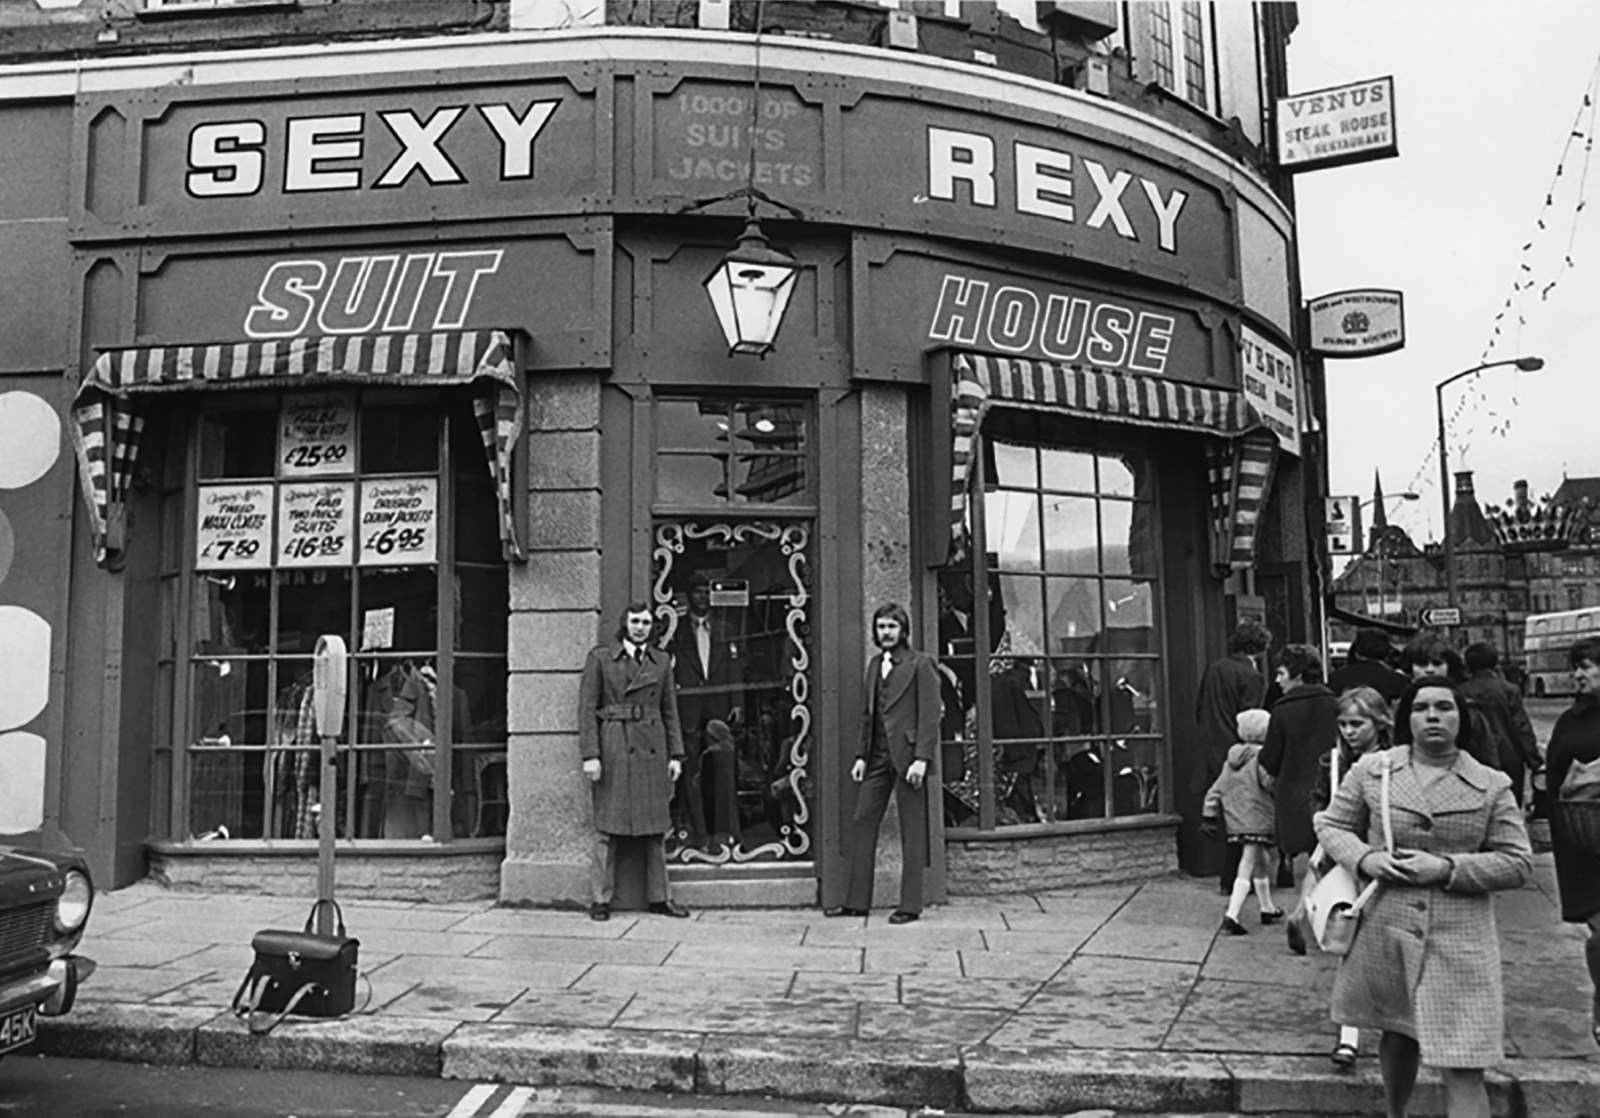 sexy rexy clothes shop sheffield.jpg